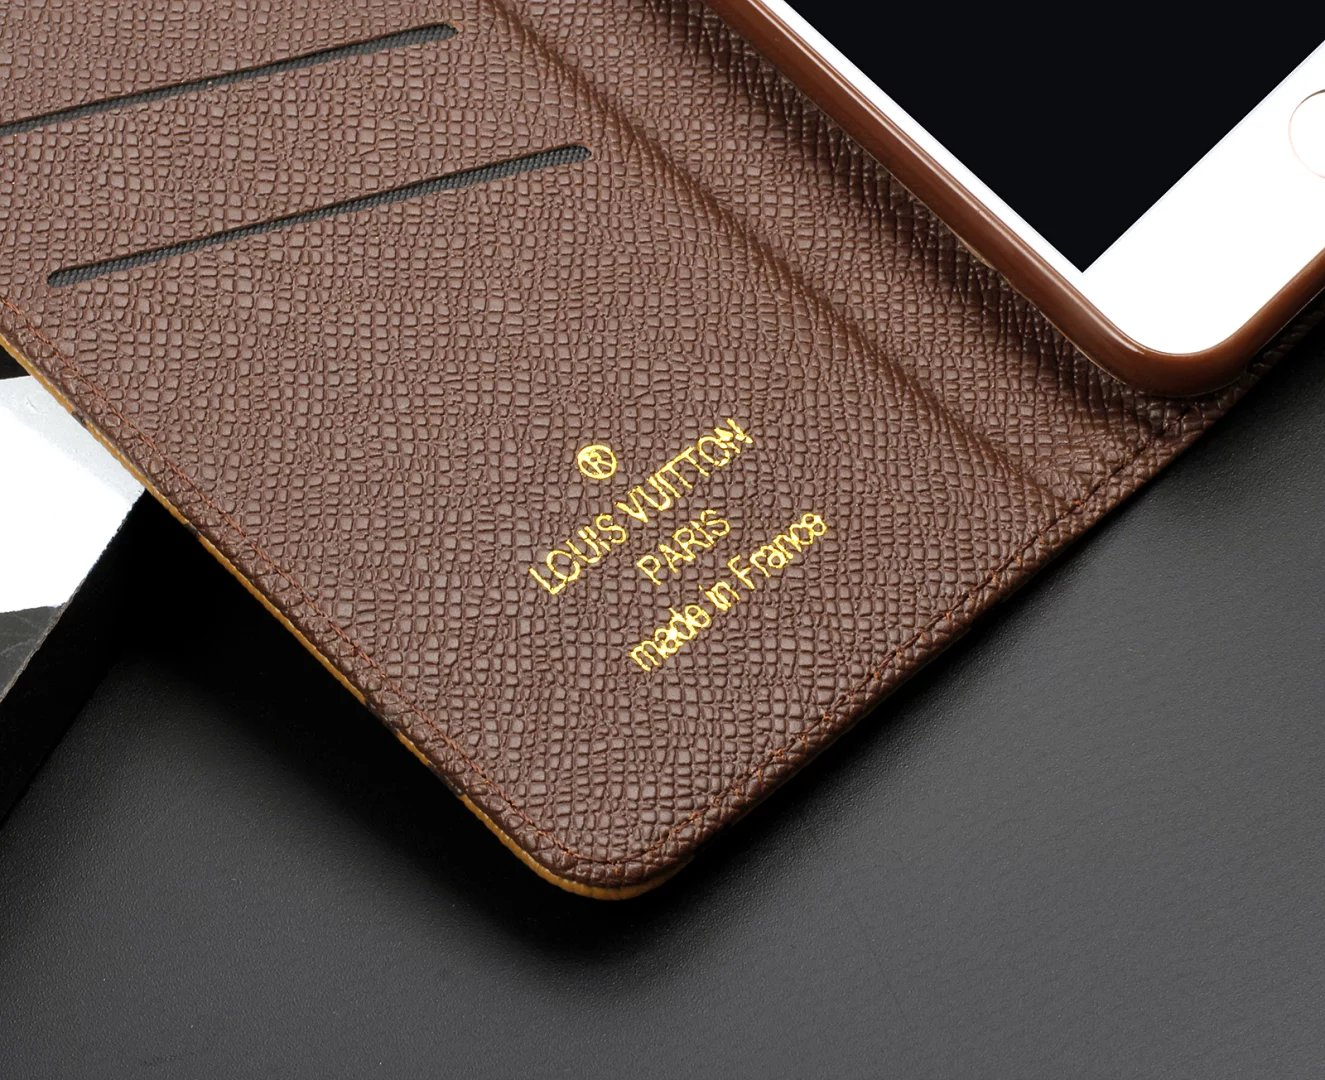 phone cover iphone 8 cases iphone 8 Louis Vuitton iphone 8 case best case iphone 8 nice iphone 8 cases create your own cell phone case best custom iphone cases phonecases mophie juice pack iphone 8